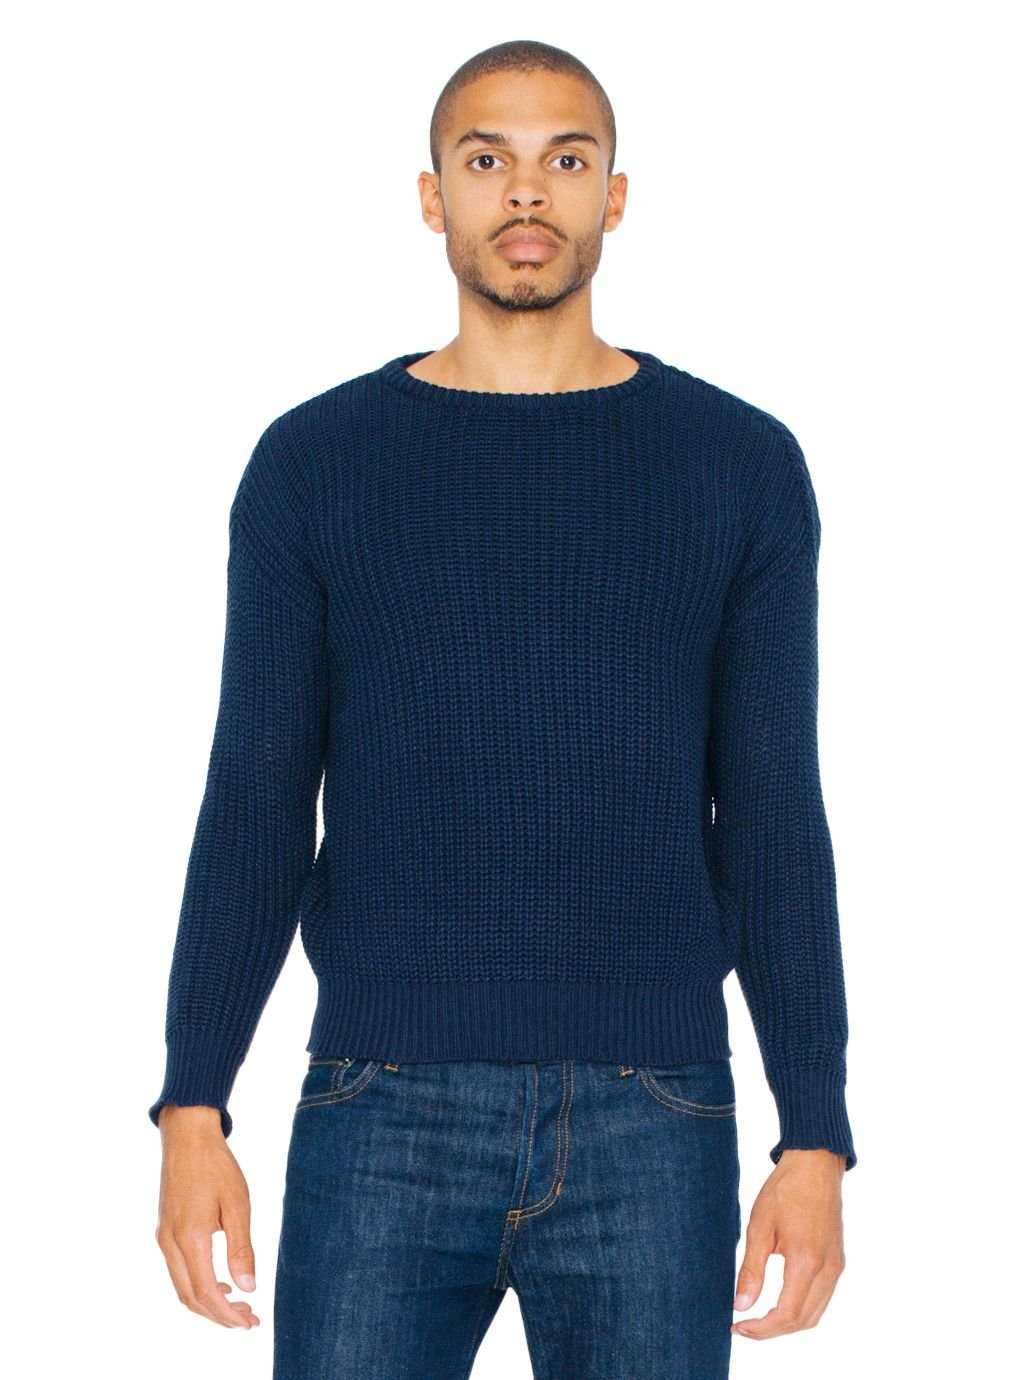 American Apparel Men's Fisherman's Pullover Sweater, Navy, X-Large